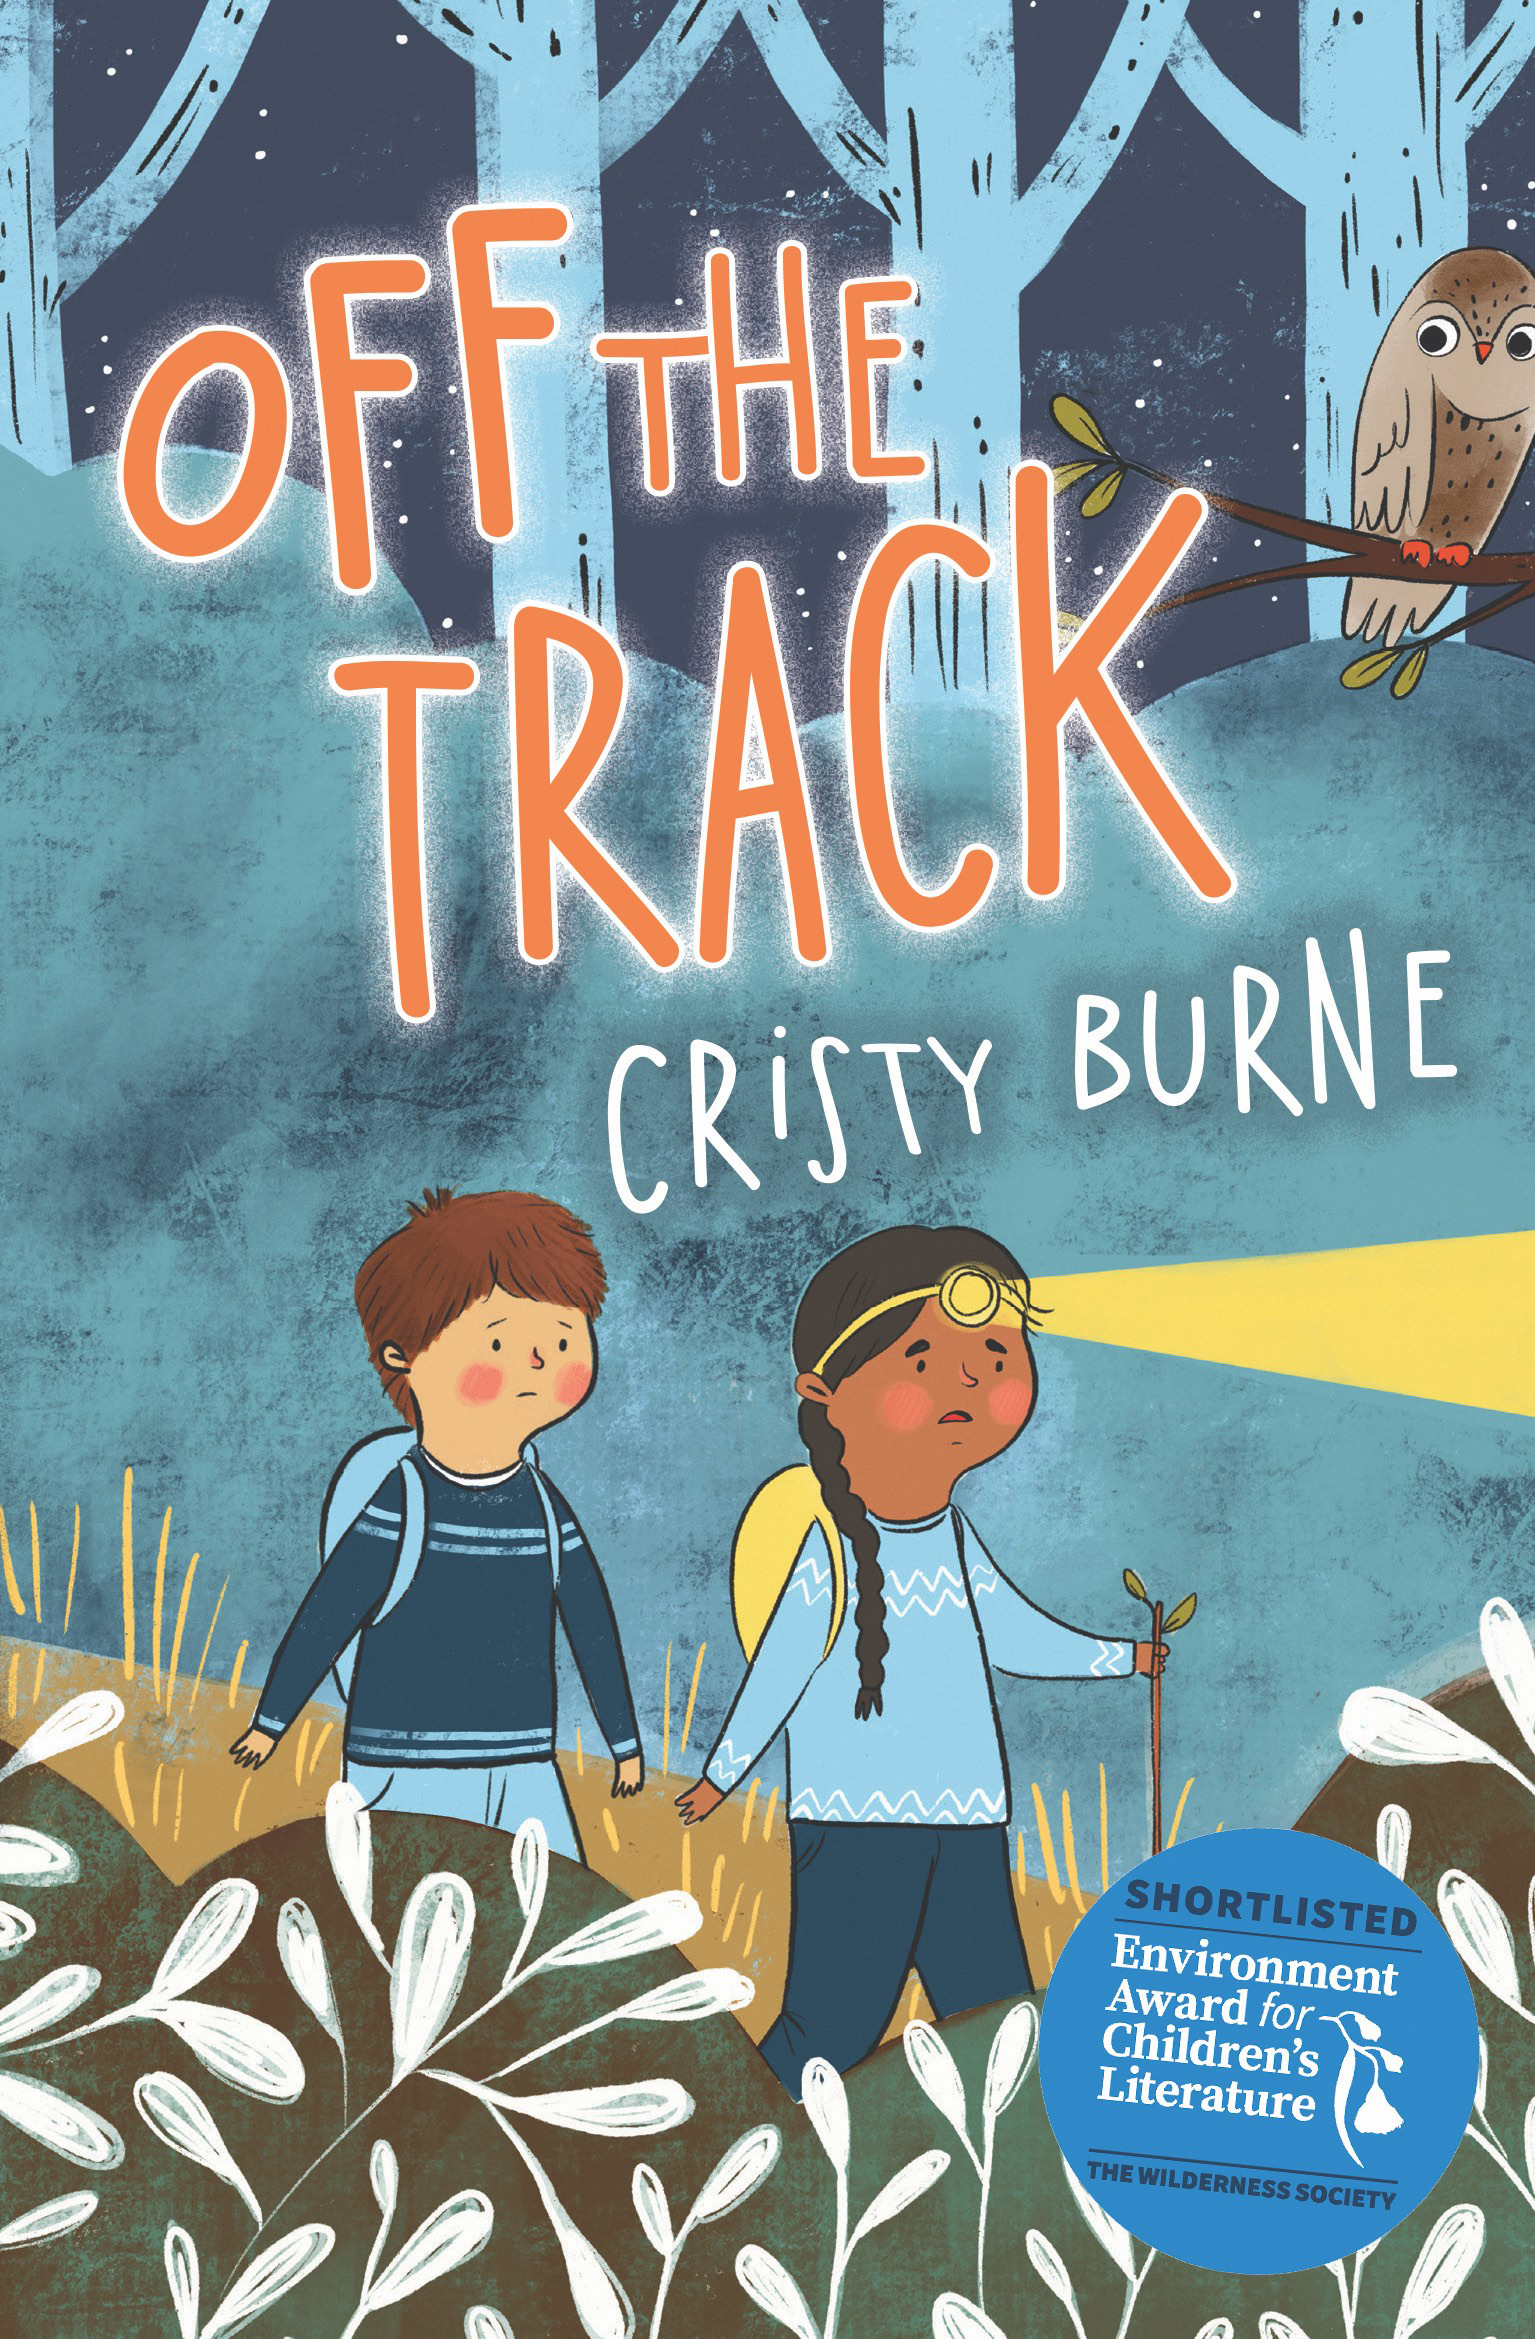 Author Cristy Burne talks about her latest book: Off the Track